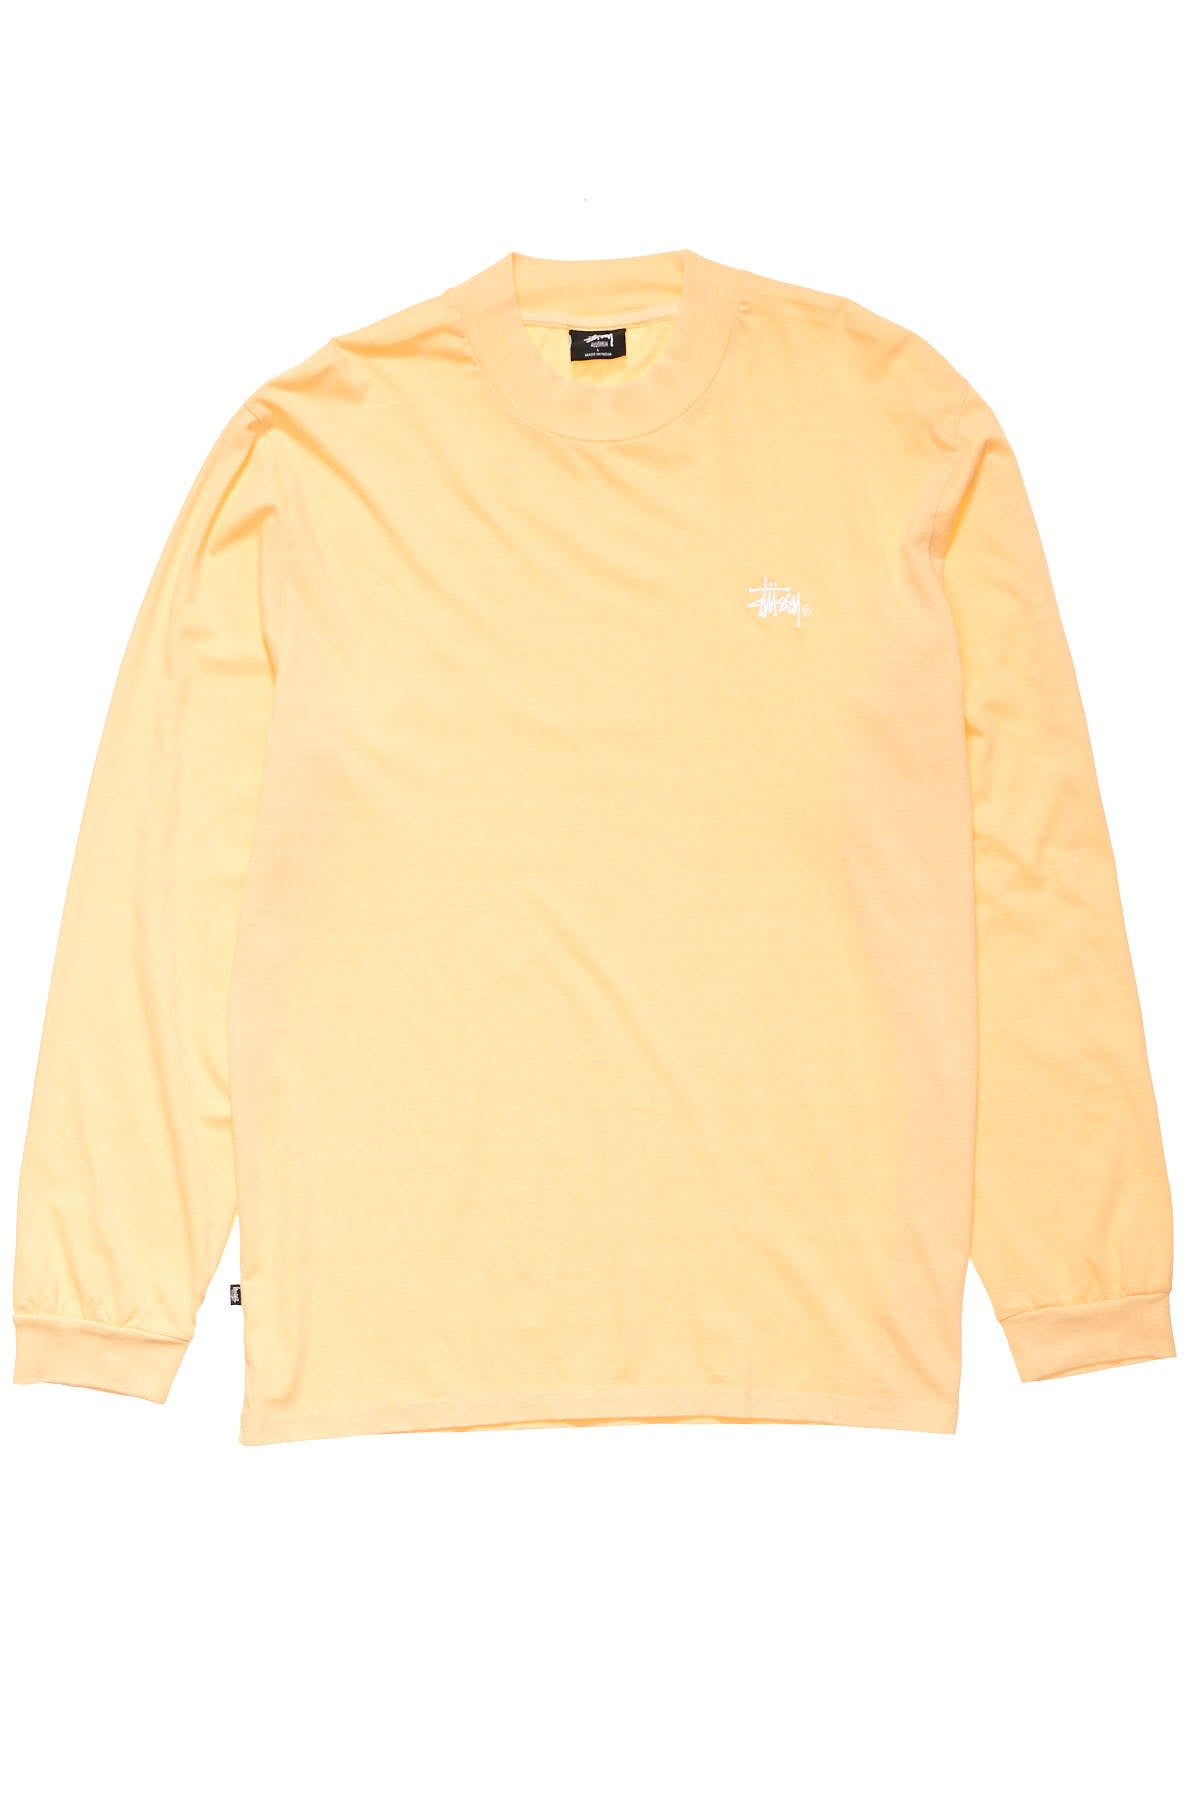 Mock Neck LS Tee